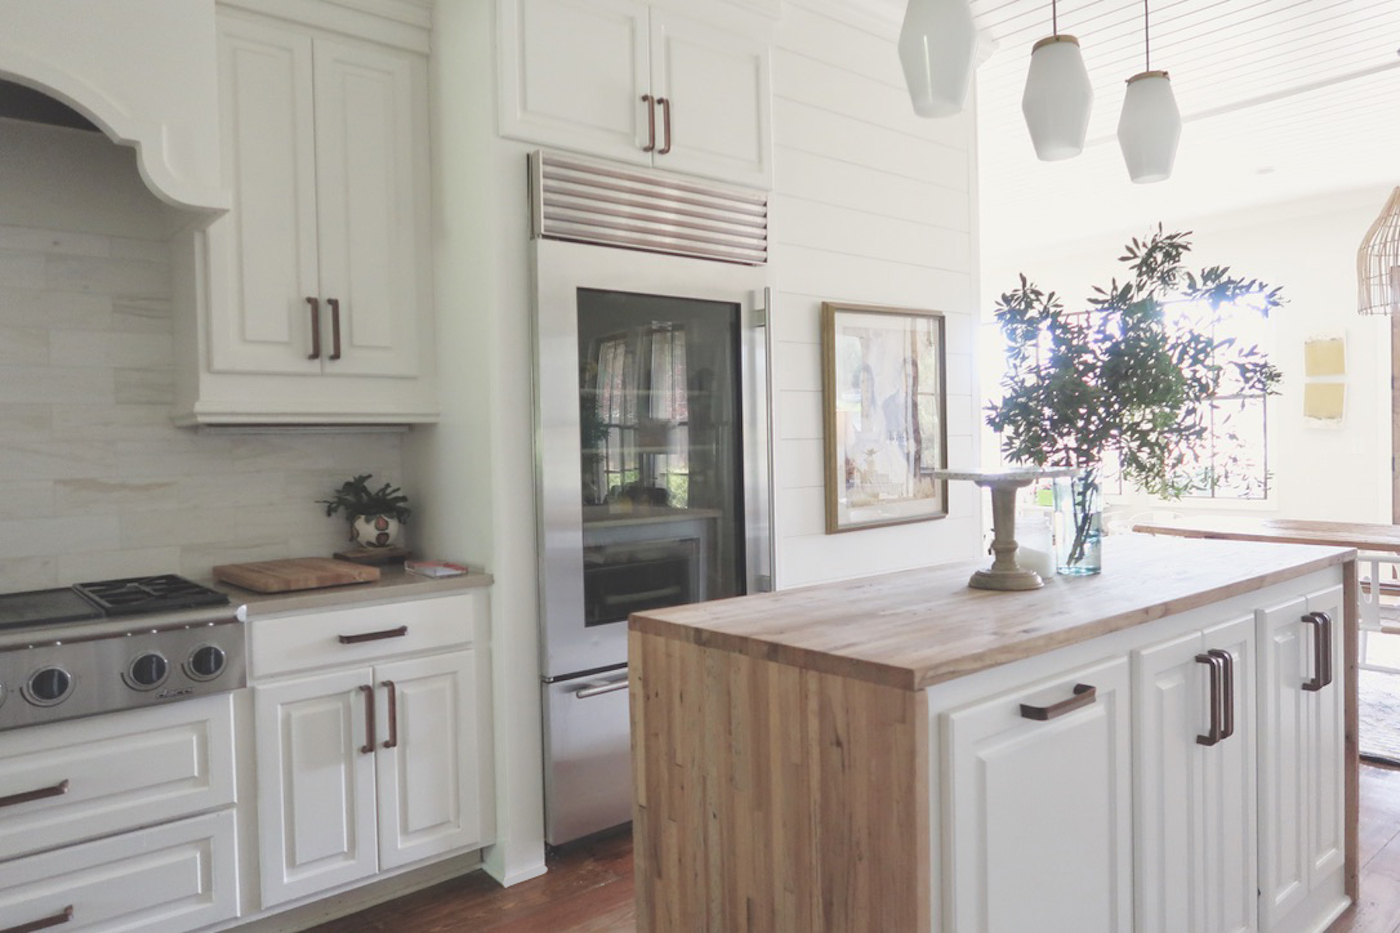 Kitchen Renovation // BEFORE AND AFTER // New quartz countertops, wooden hardware, reclaimed butcher block waterfall island